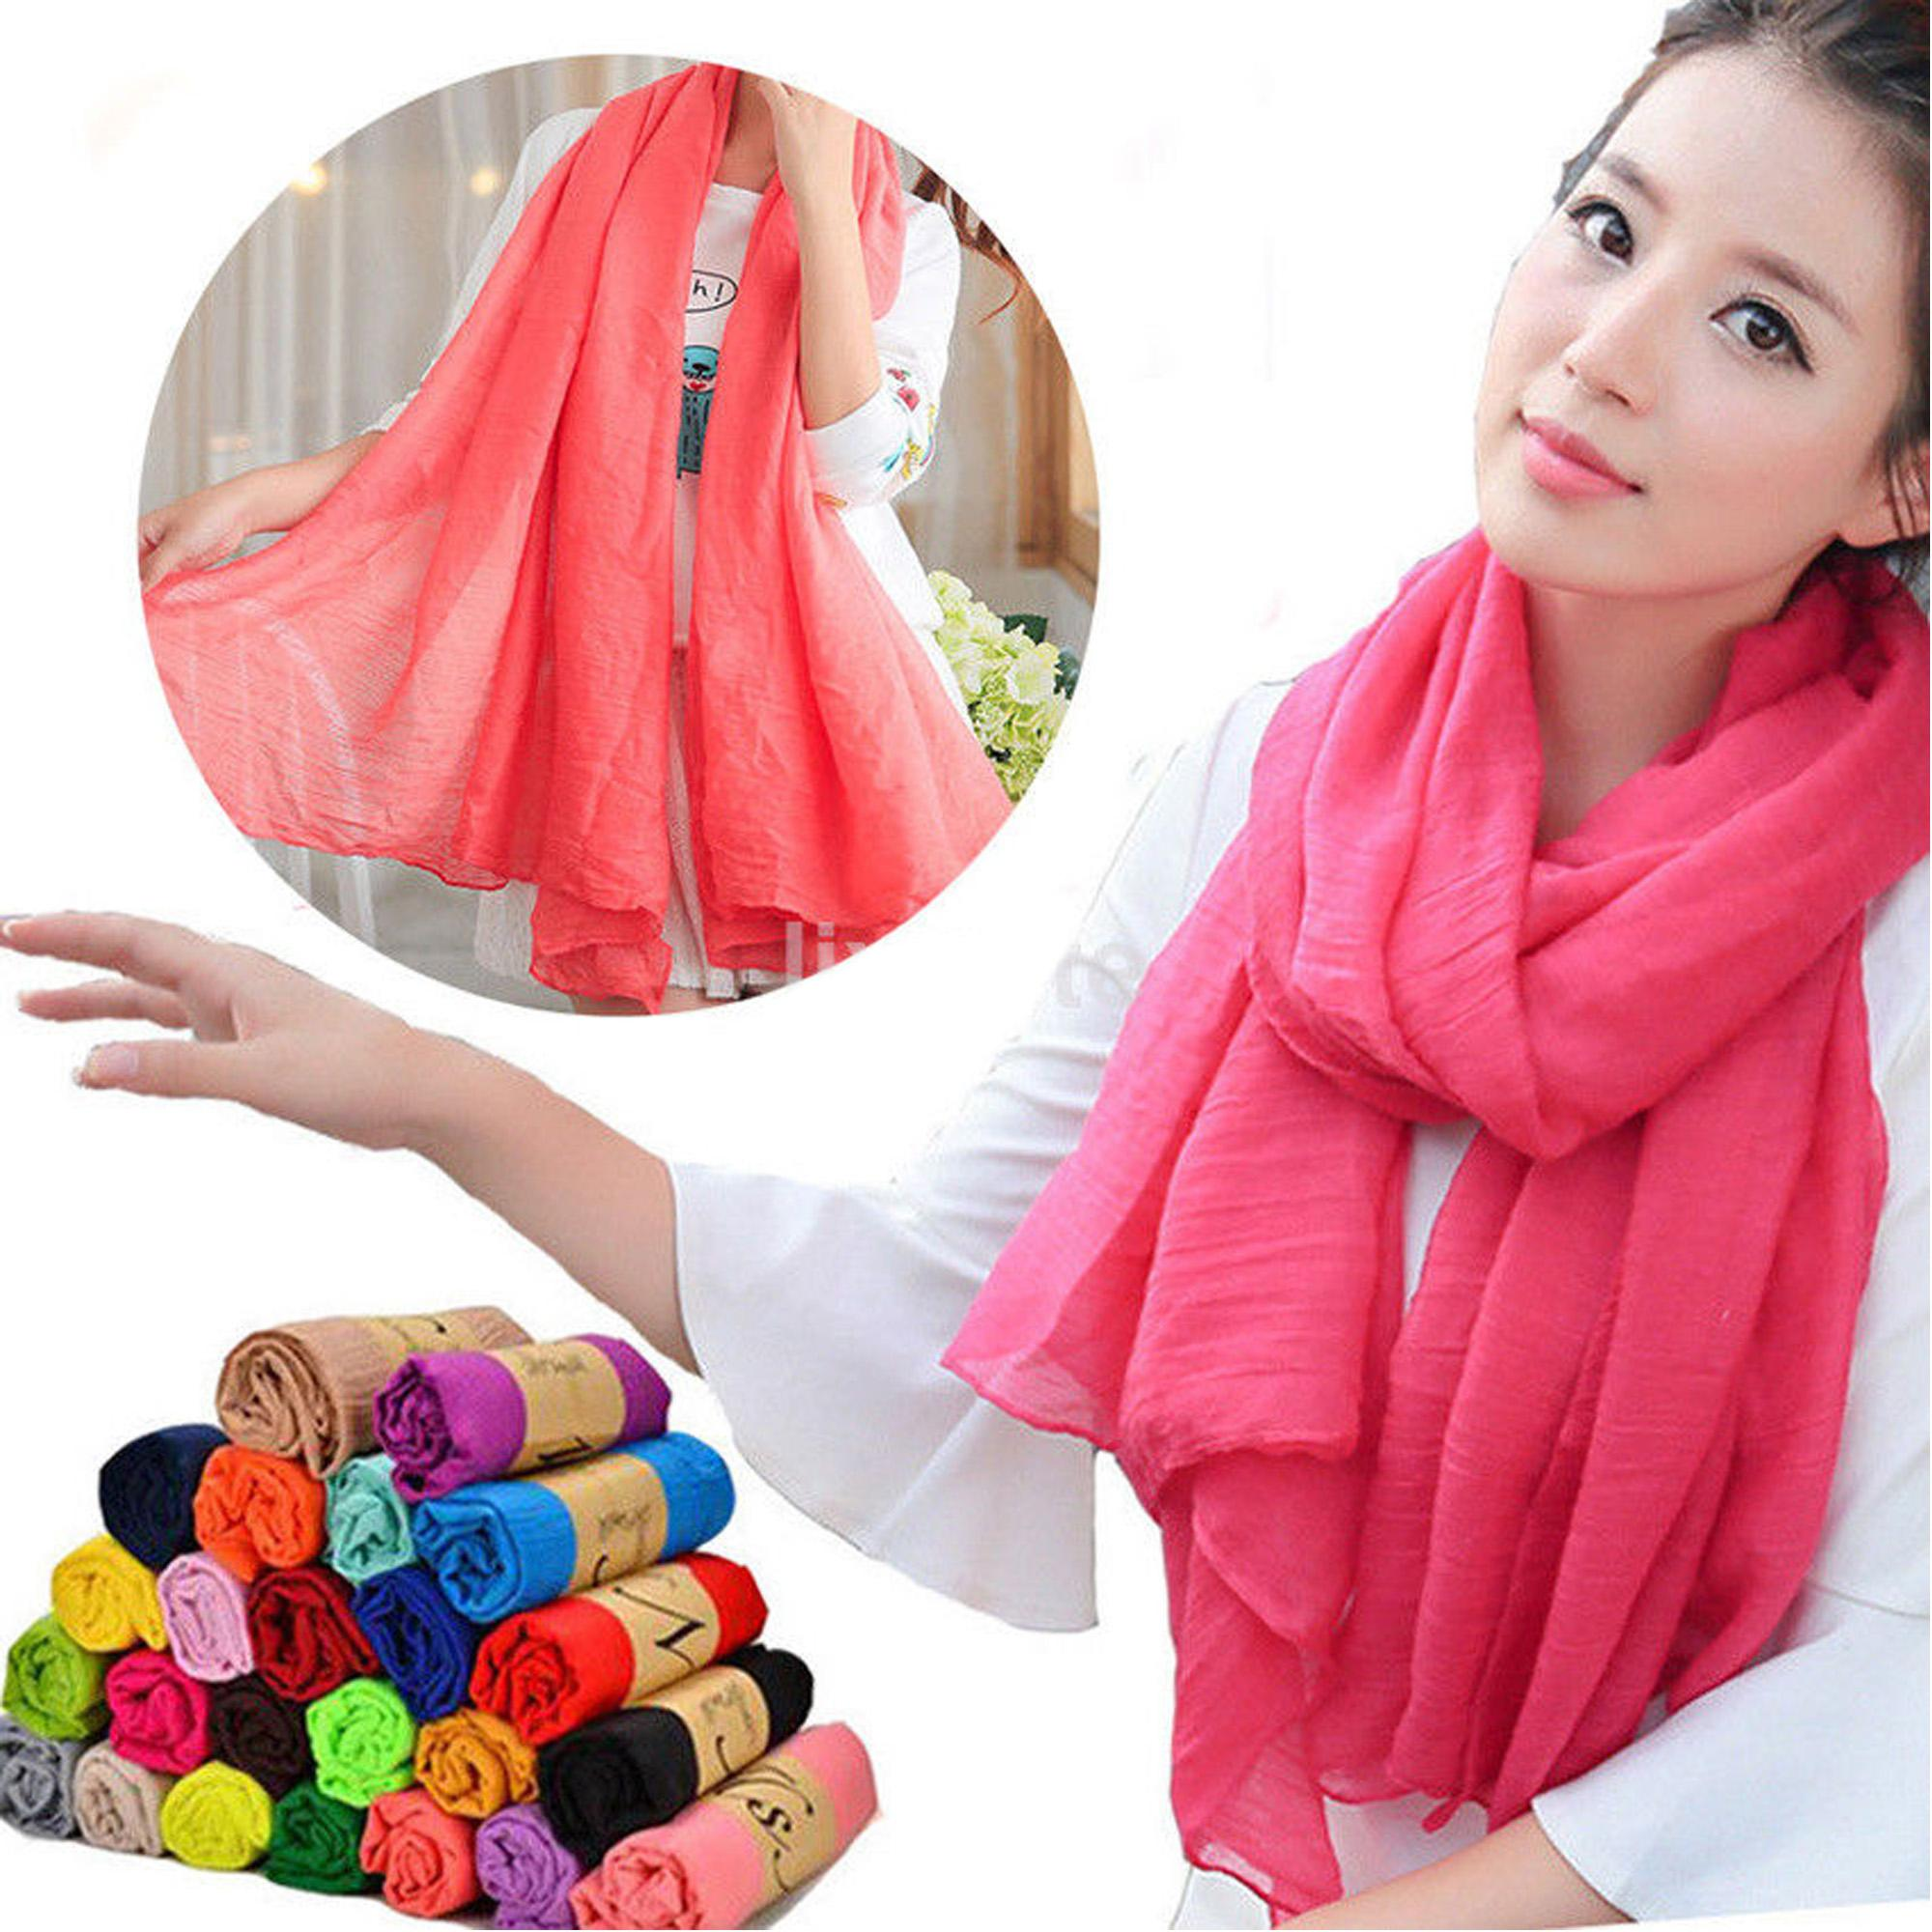 5a16b1f56f2a Scarves for Women for sale - Fashion Scarves online brands